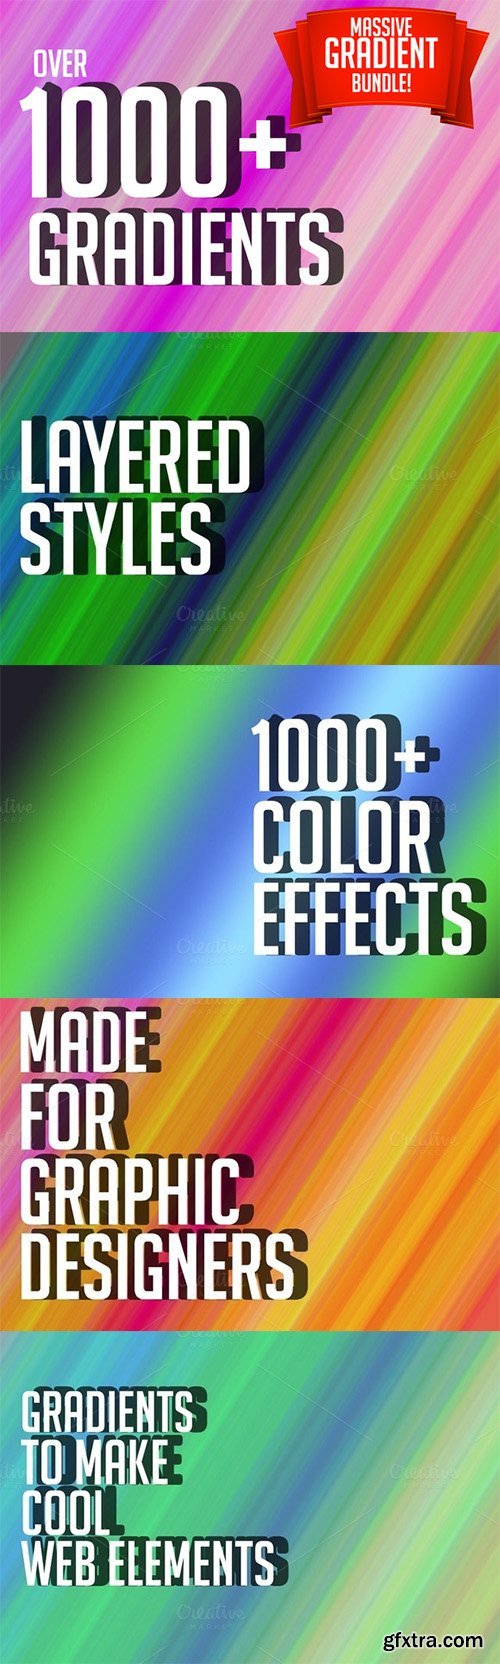 1000+ Free(116) Gradients Bundle! - CM 300825